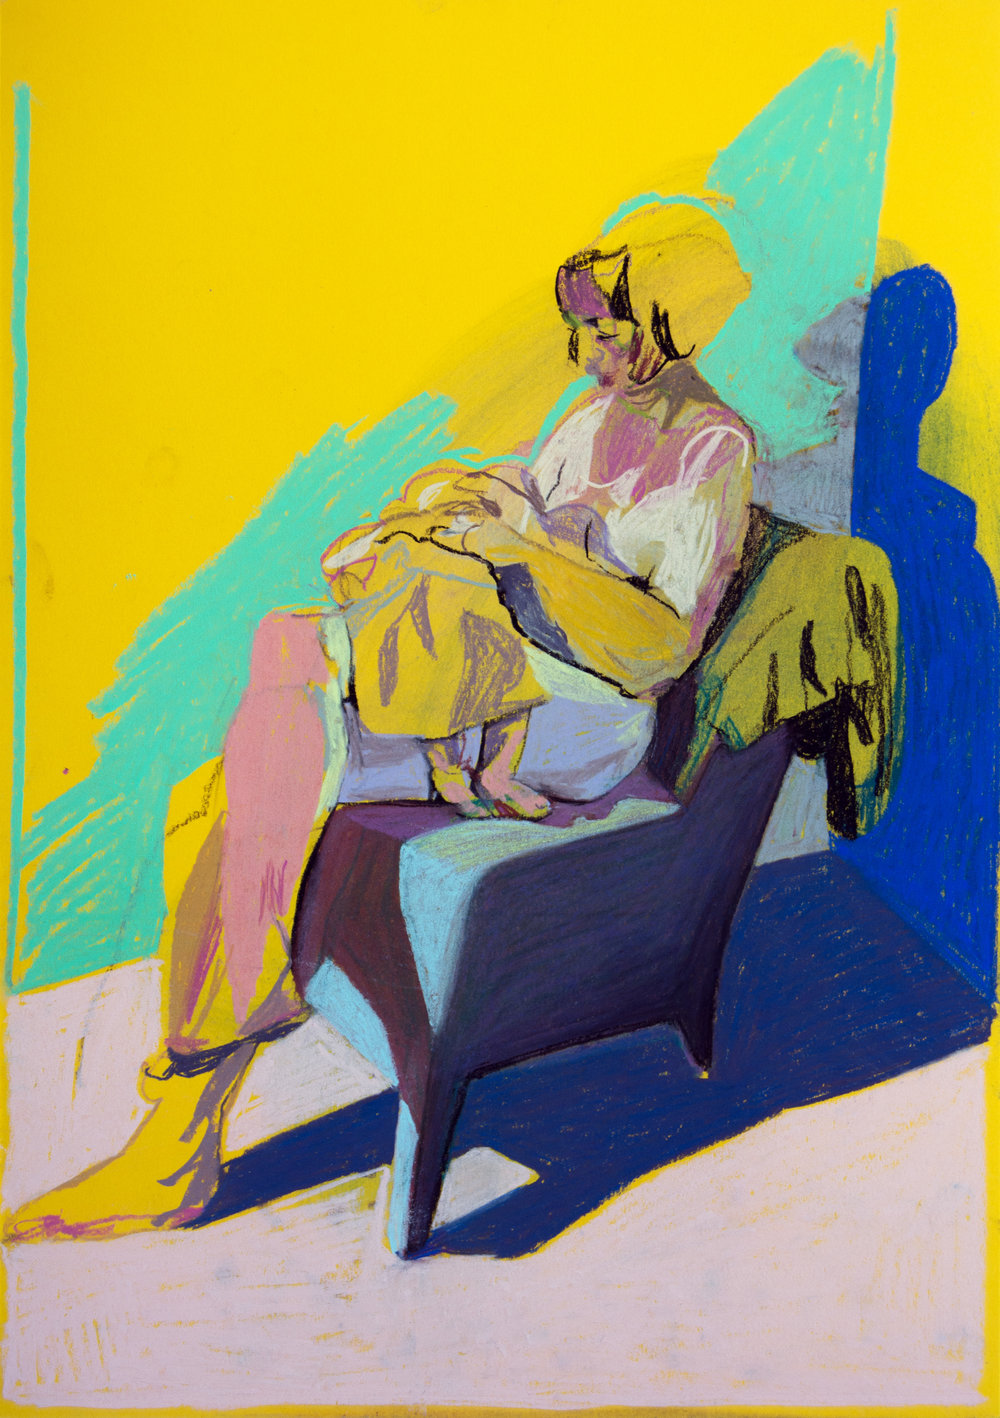 'Mother, model and child on yellow with purple shadow', 2018, pastel, 42 x 29.7cm, SOLD